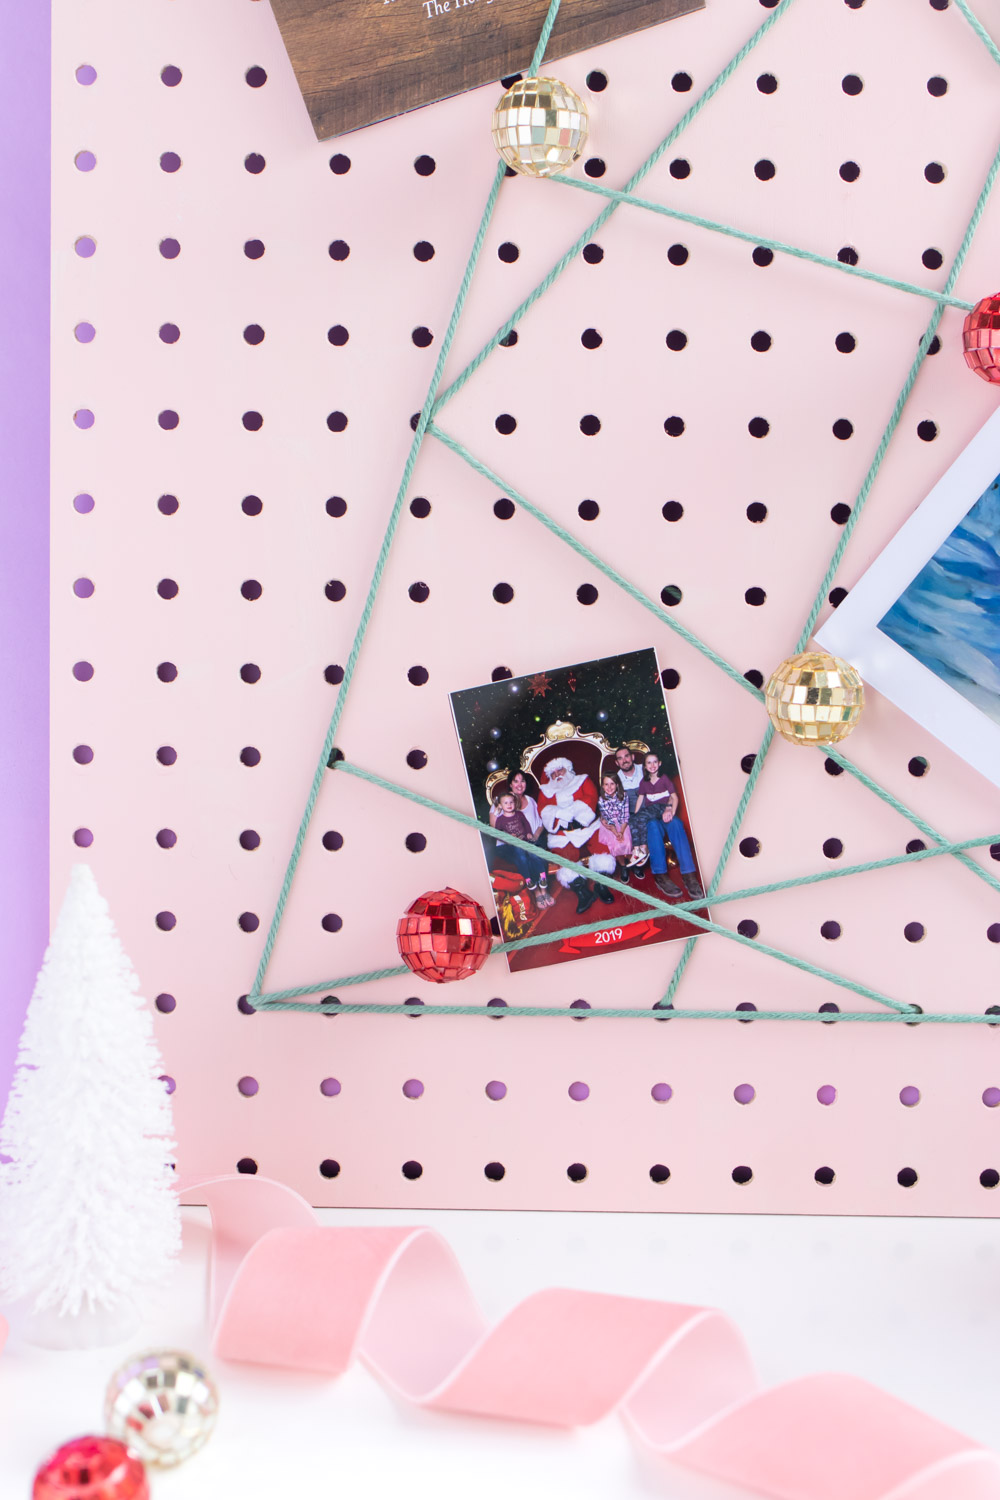 DIY Holiday Pegboard Card Holder // Turn a slab of pegboard into a fun Christmas tree card display inspired by string art! Display your holiday cards in a unique way with this DIY Christmas decor idea #christmasdiy #christmascard #christmasdecor #christmasstorage #pegboard #papercrafts #stringart #holidaystorage #cardstorage